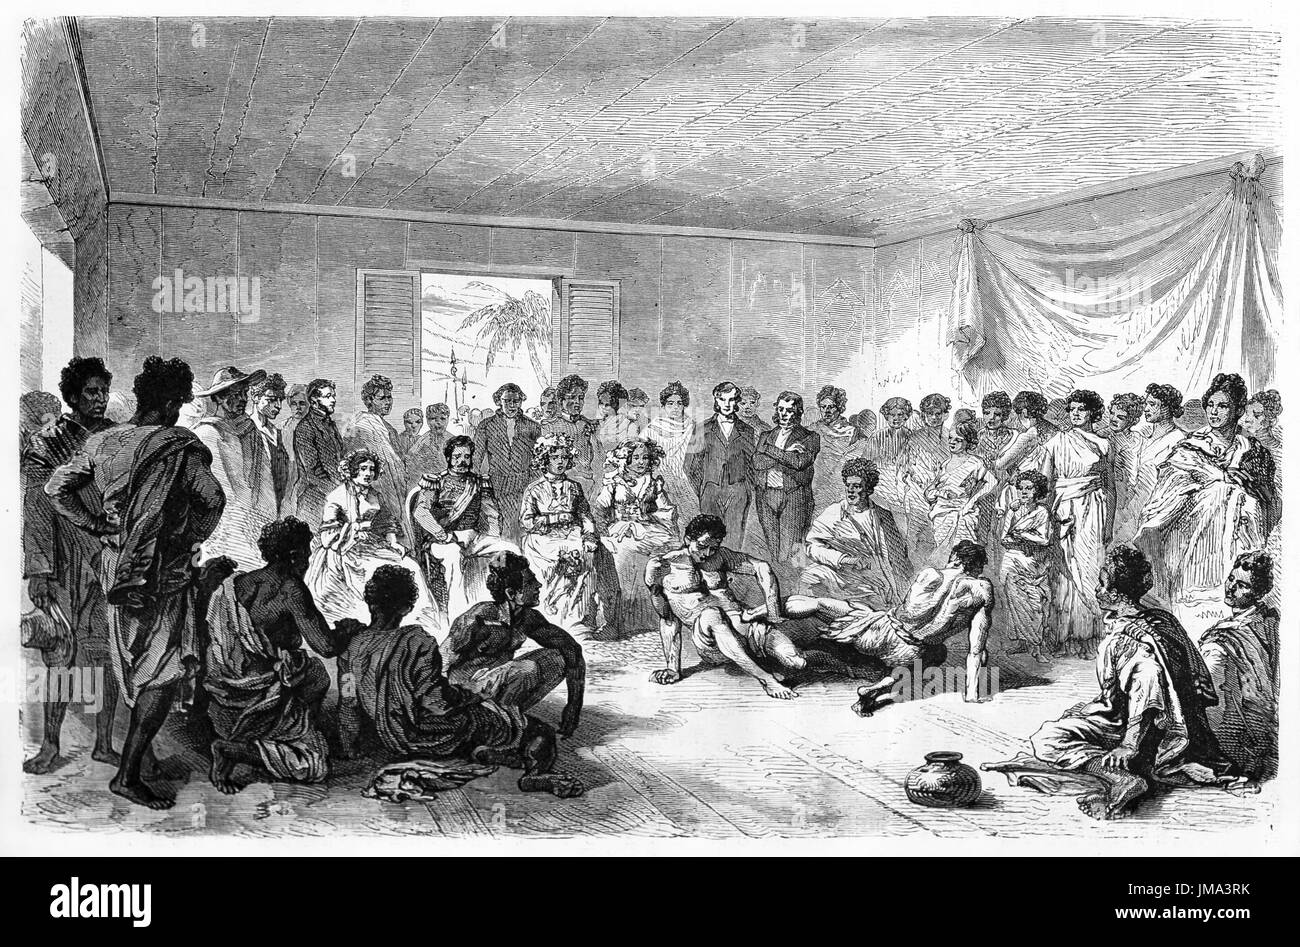 Old illustration of Malgasy wrestlers fighting indoors surrounded by